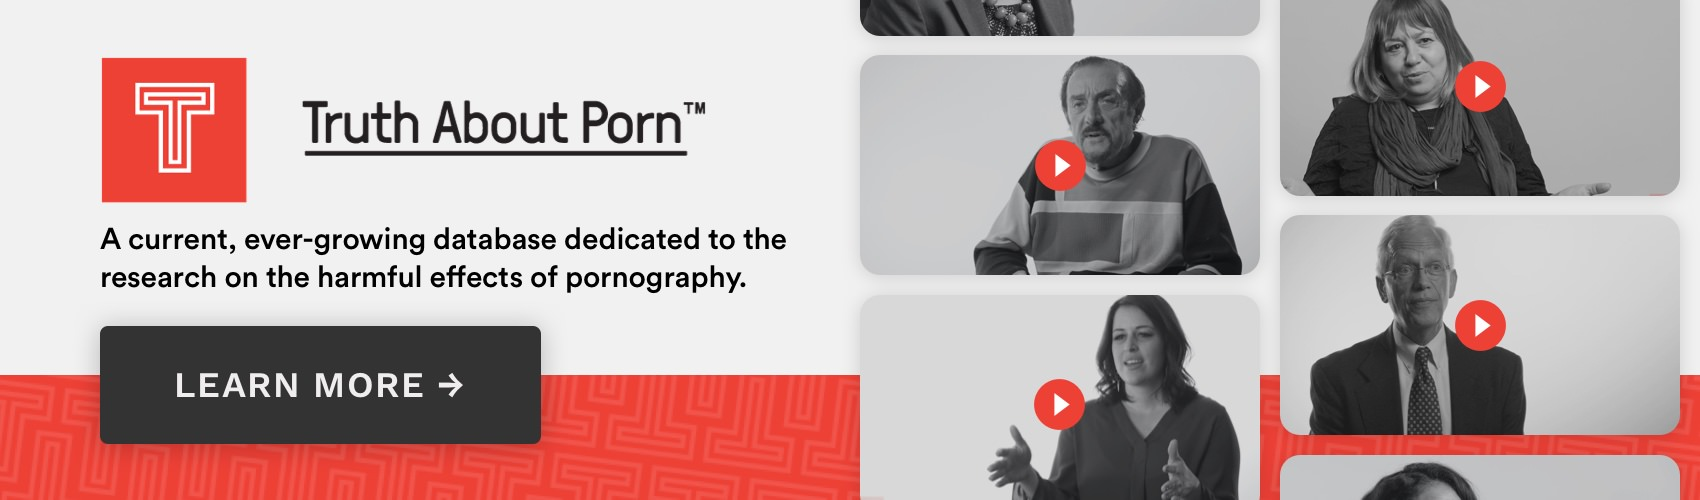 Truth About Porn